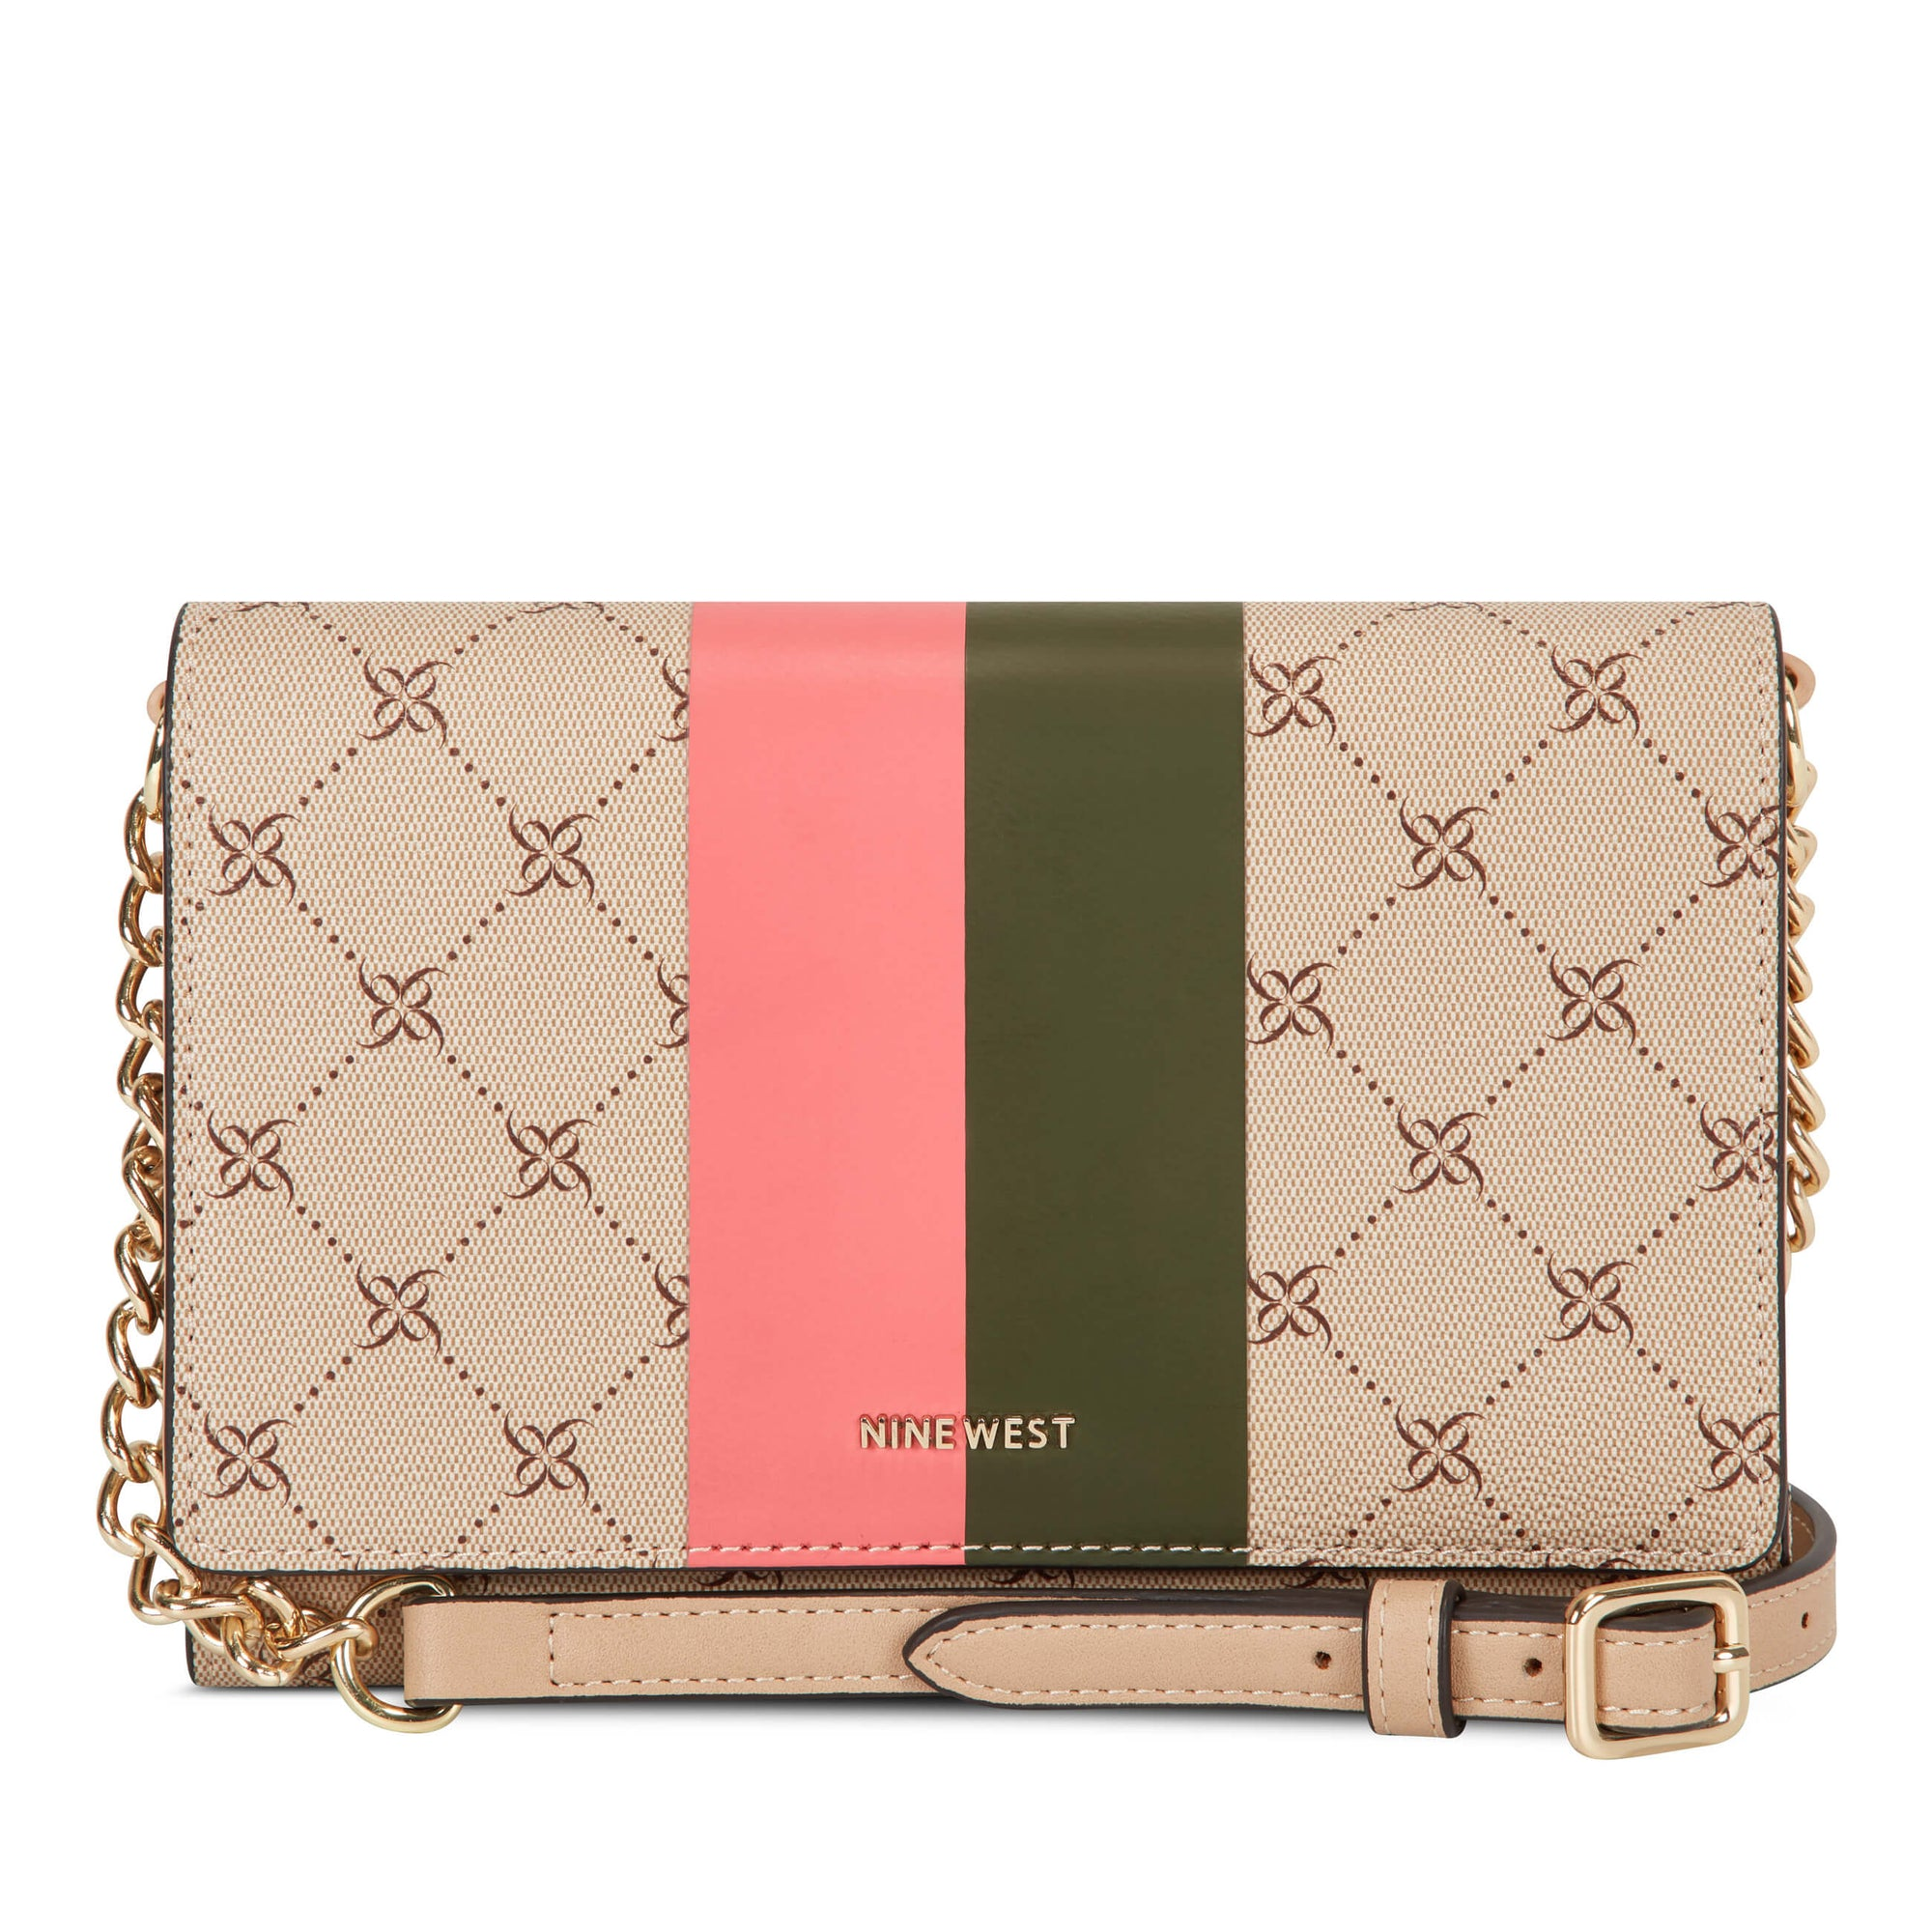 luella-wallet-on-a-string---logo-stripe-in-logo-stripe